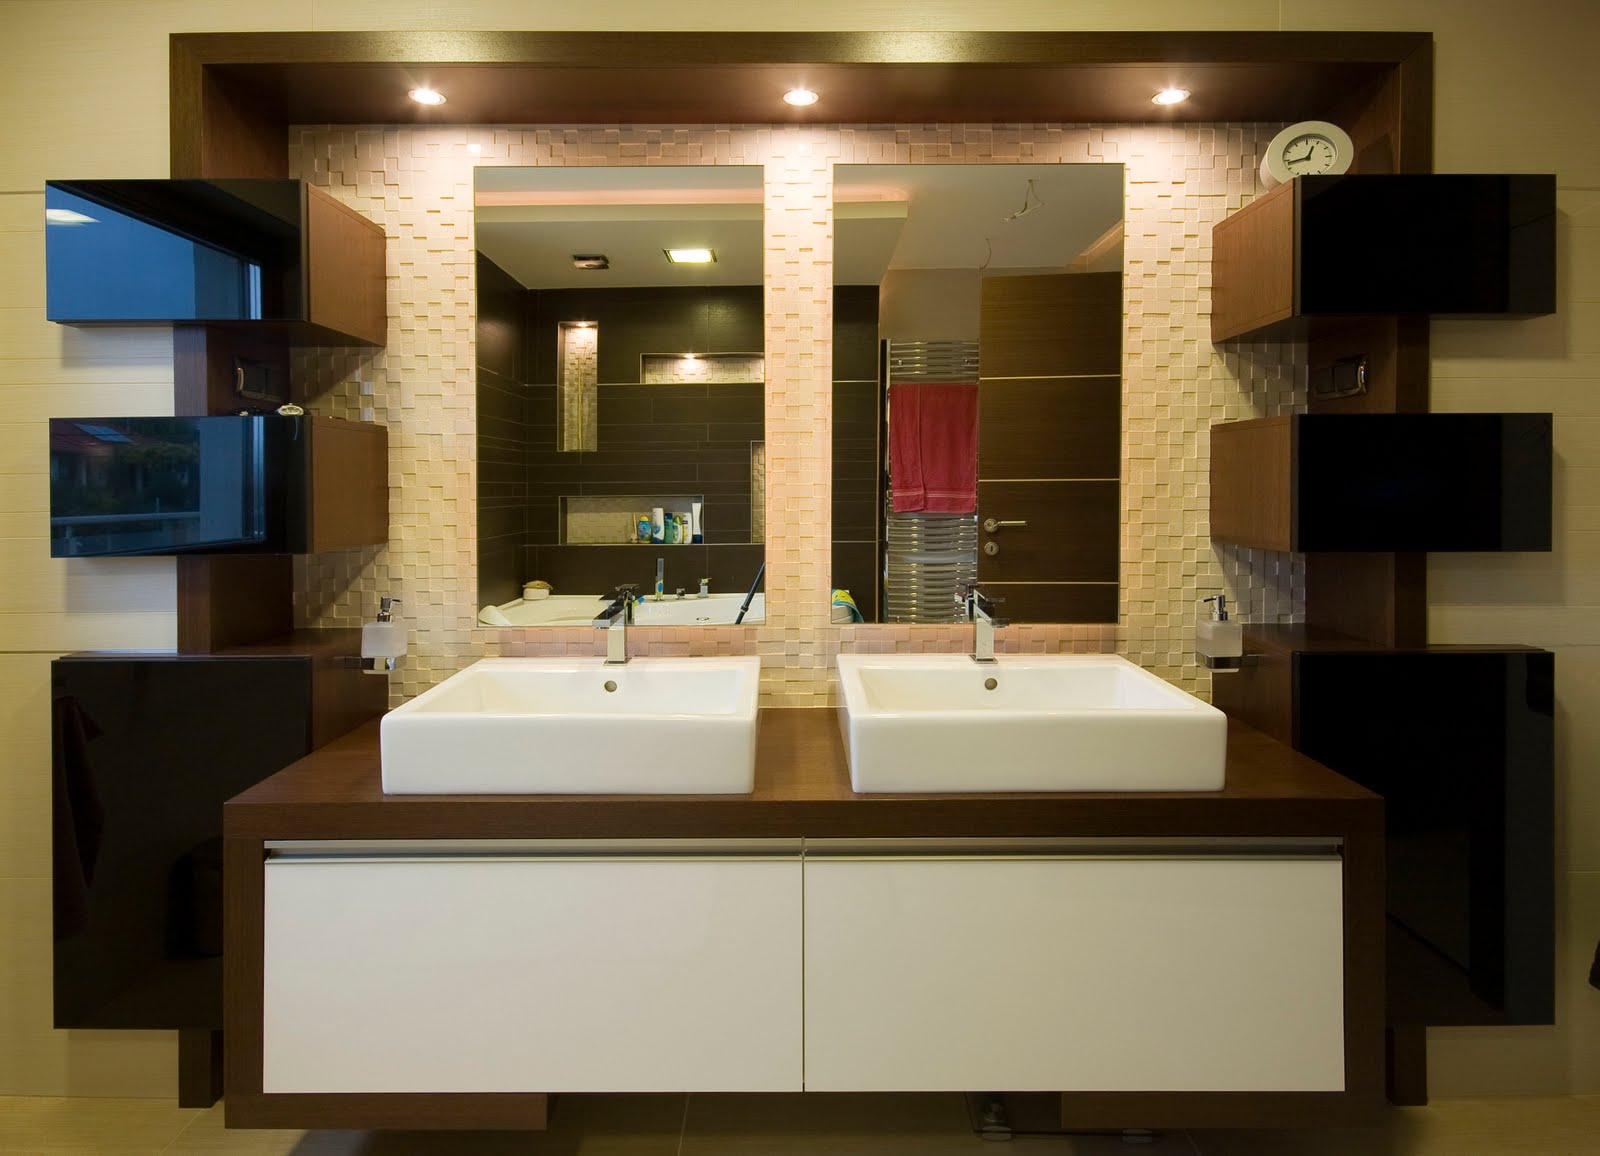 Luxury-modern-bathroom-home-interior-design-idea-with-luxury-elegant-bathroom-sink-design-and-with-elegant-mirrror-design.